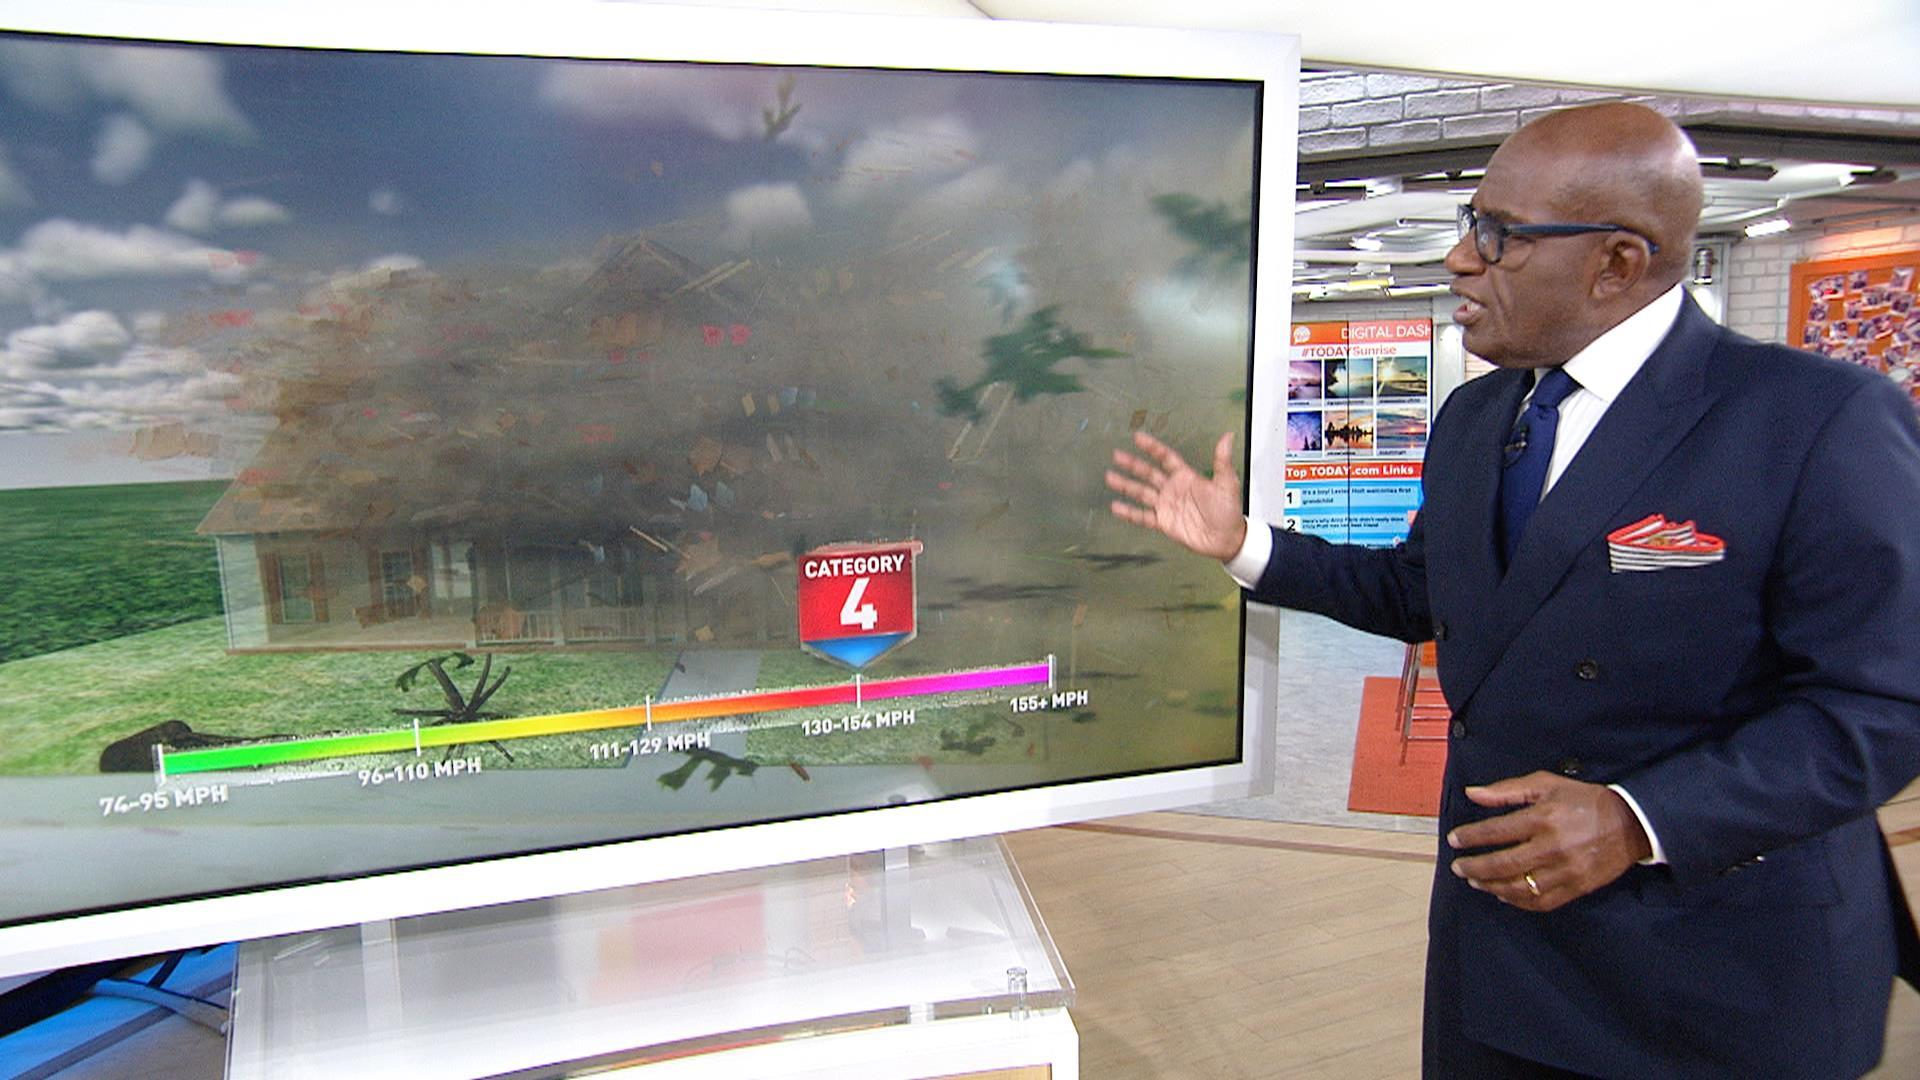 NBC weatherman Al Roker used an animated video to give viewers an eyeful explanation of the escalating force of hurricane winds. If animated videos aren't in your issues management, crisis preparation and marketing toolkits, they should be – soon.